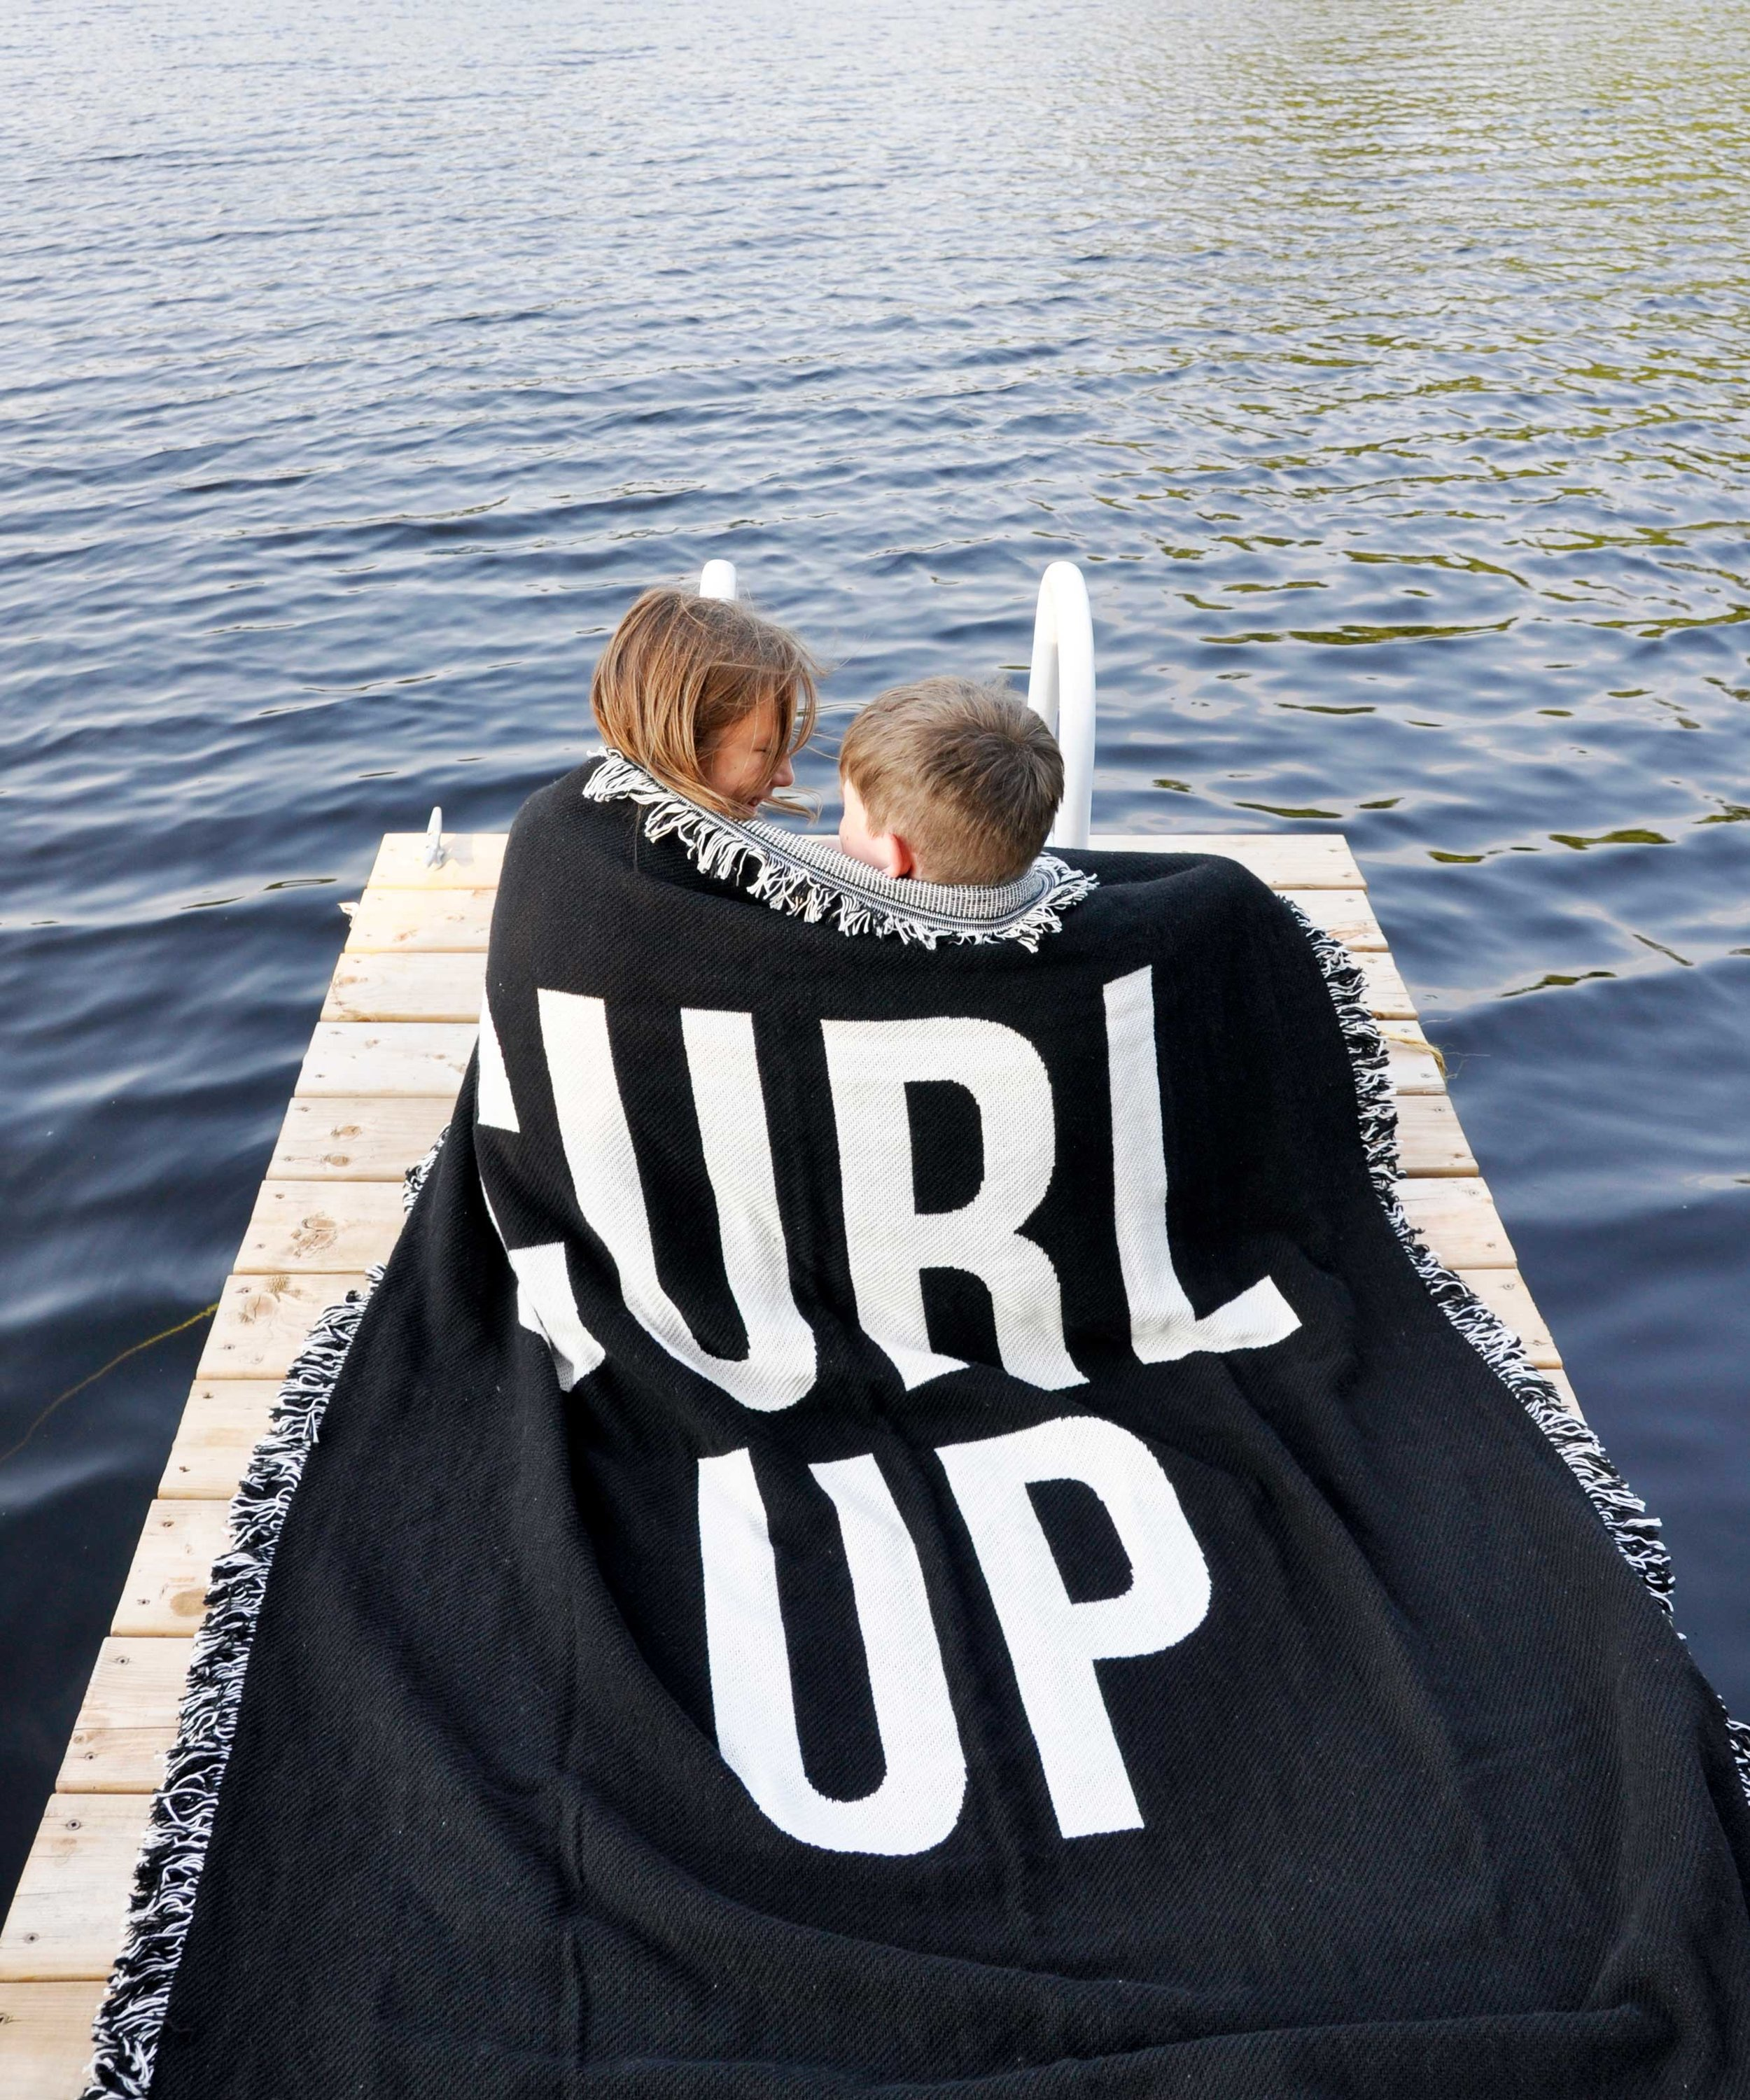 Curl Up cotton throw blanket    by Swell Made Co. Siblings curling up and making memories.